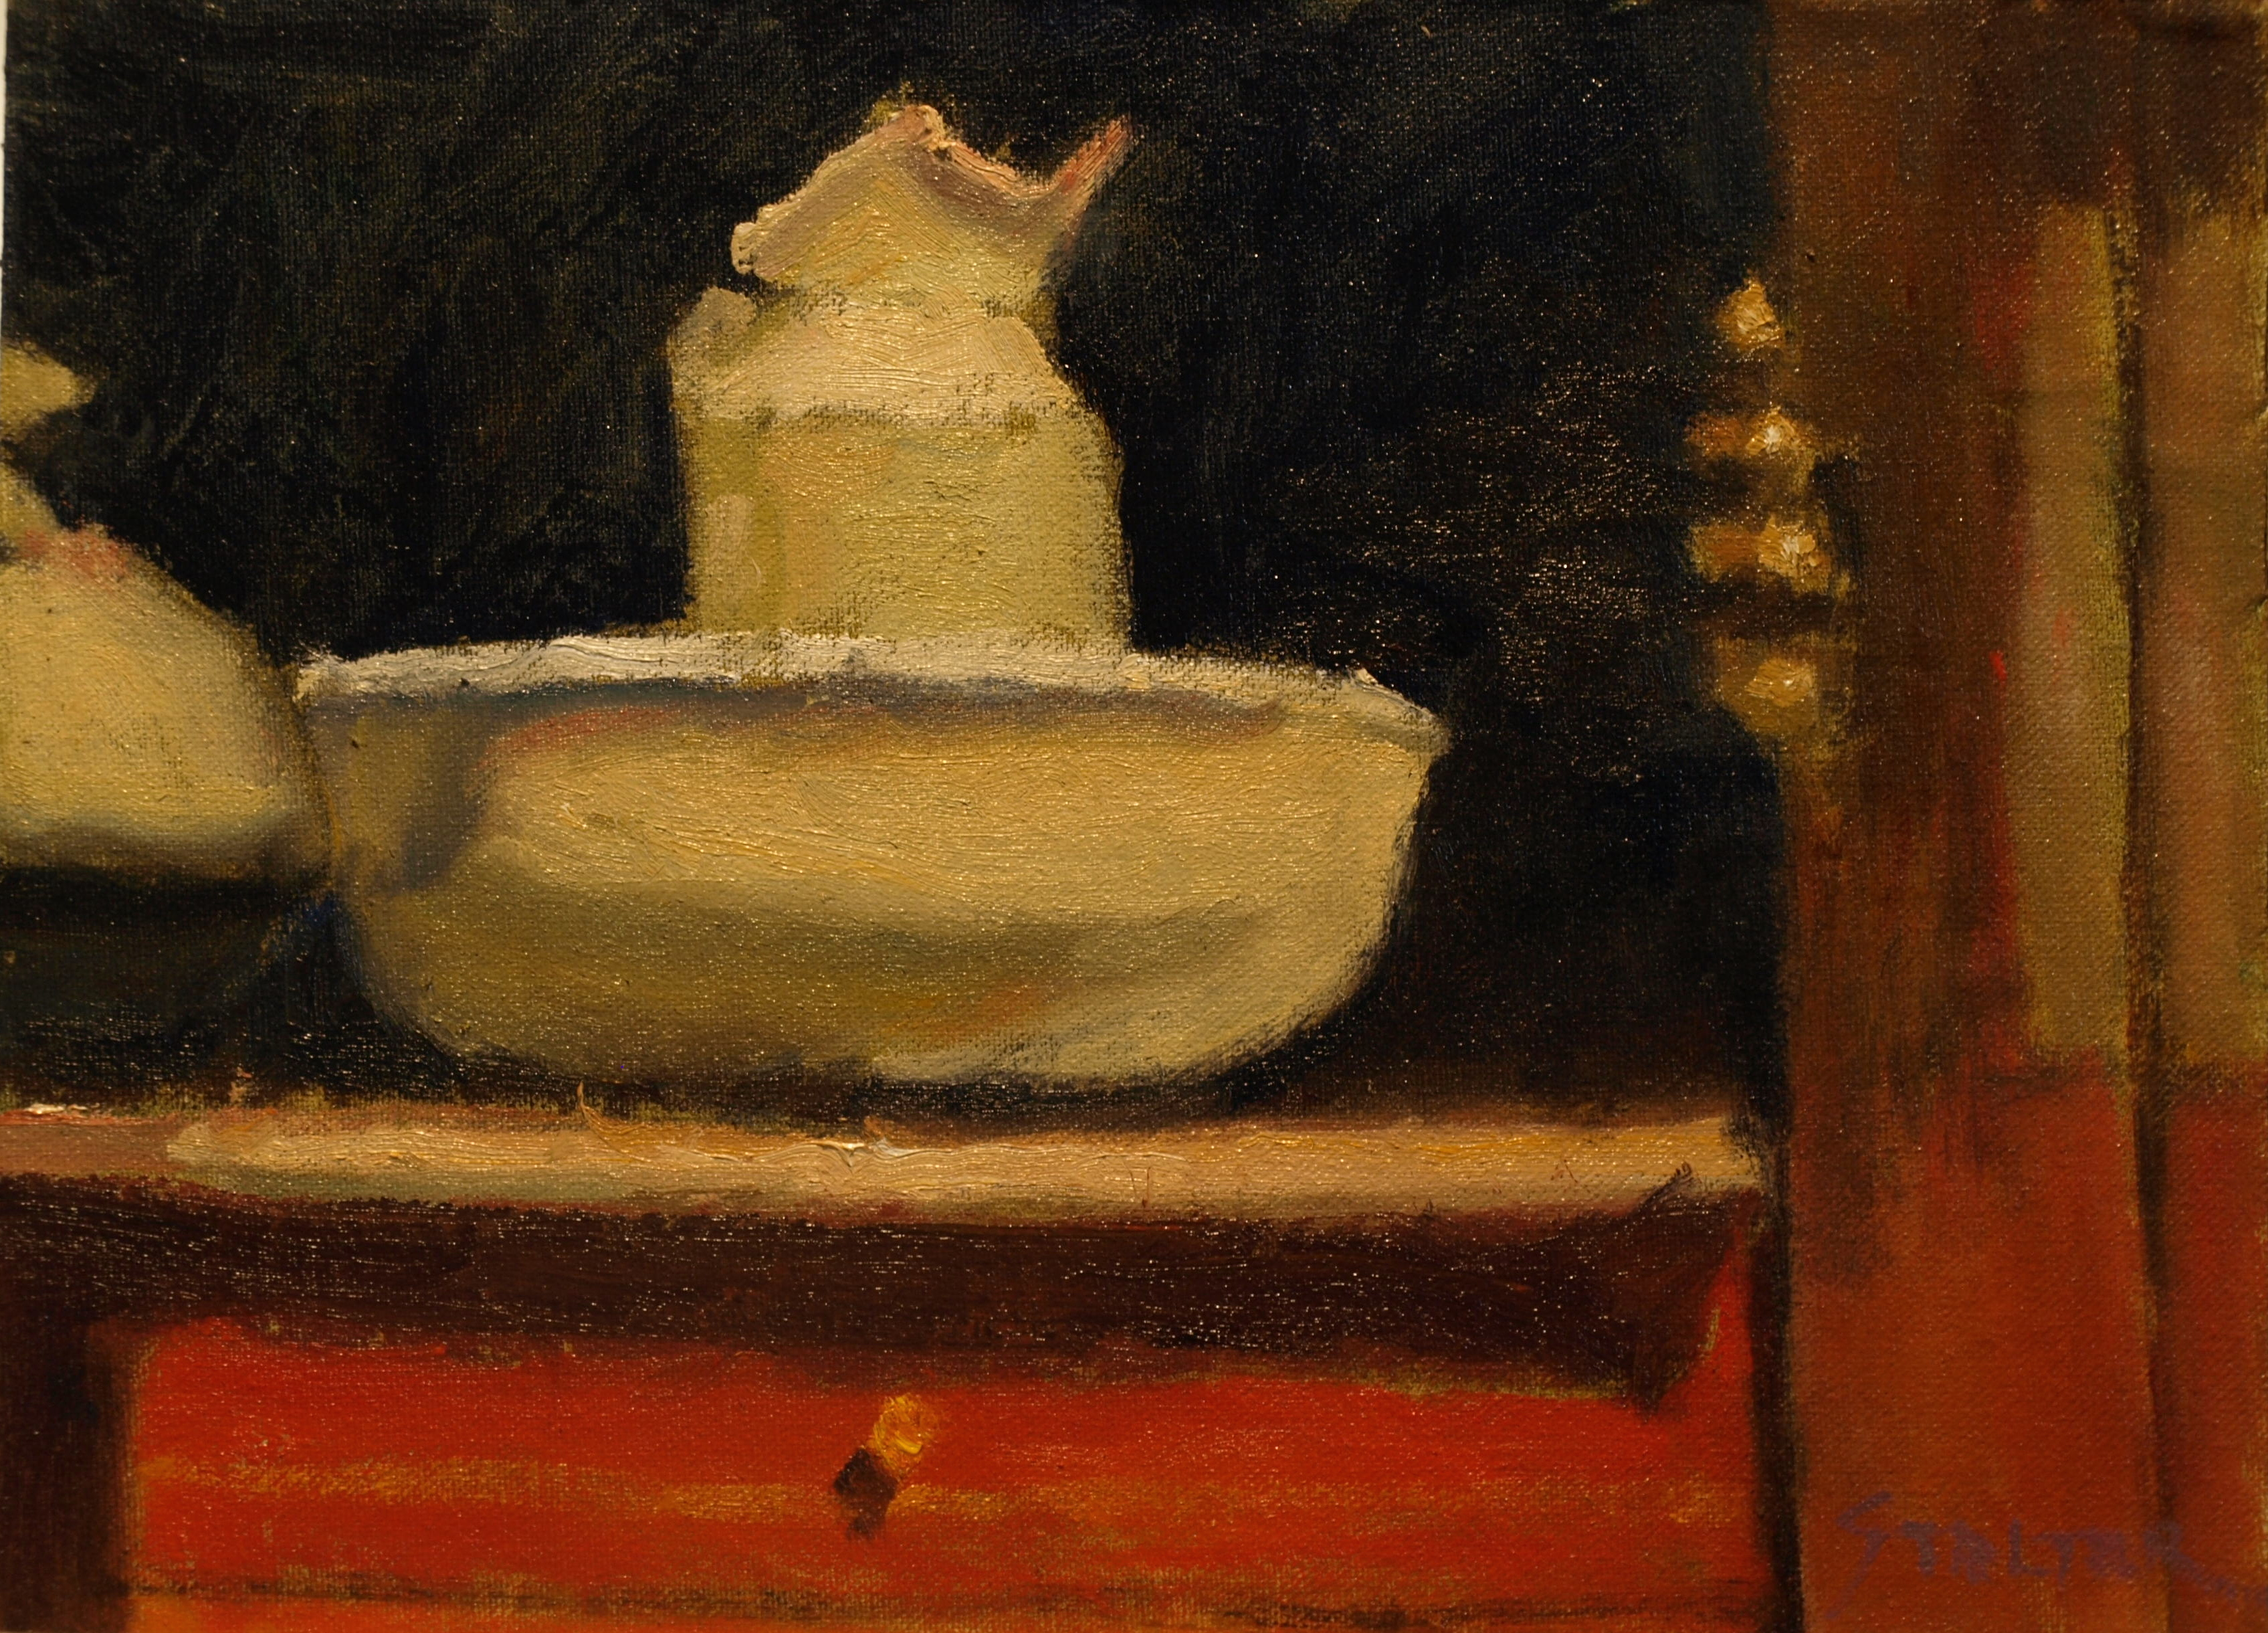 Pitcher and Bowl, Oil on Canvas on Panel, 9 x 12 Inches, by Richard Stalter, $220